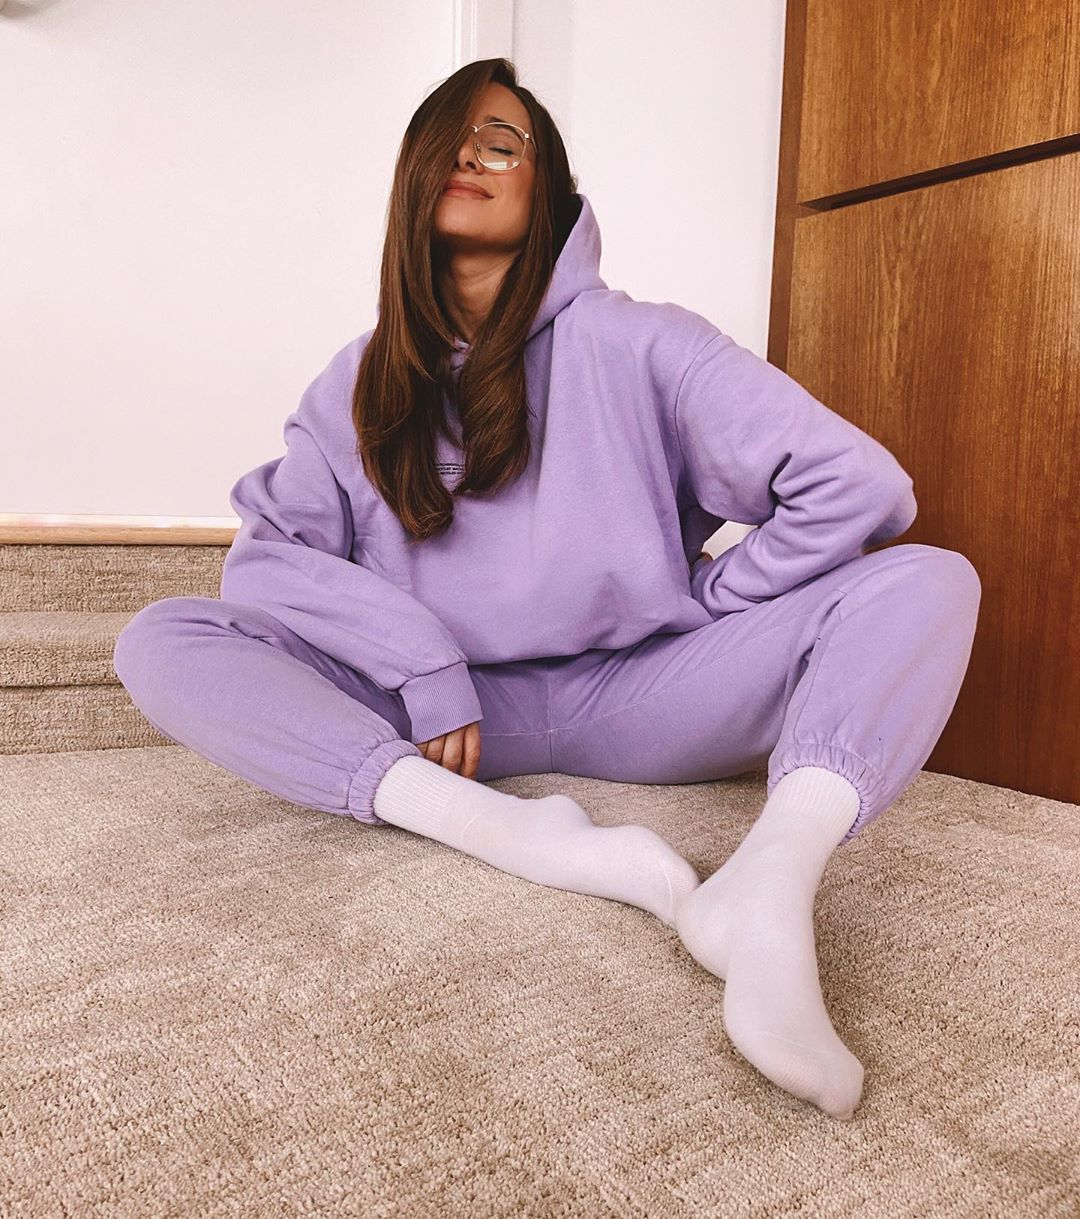 danielle-bernstein-light-purple-tracksuit-instagram